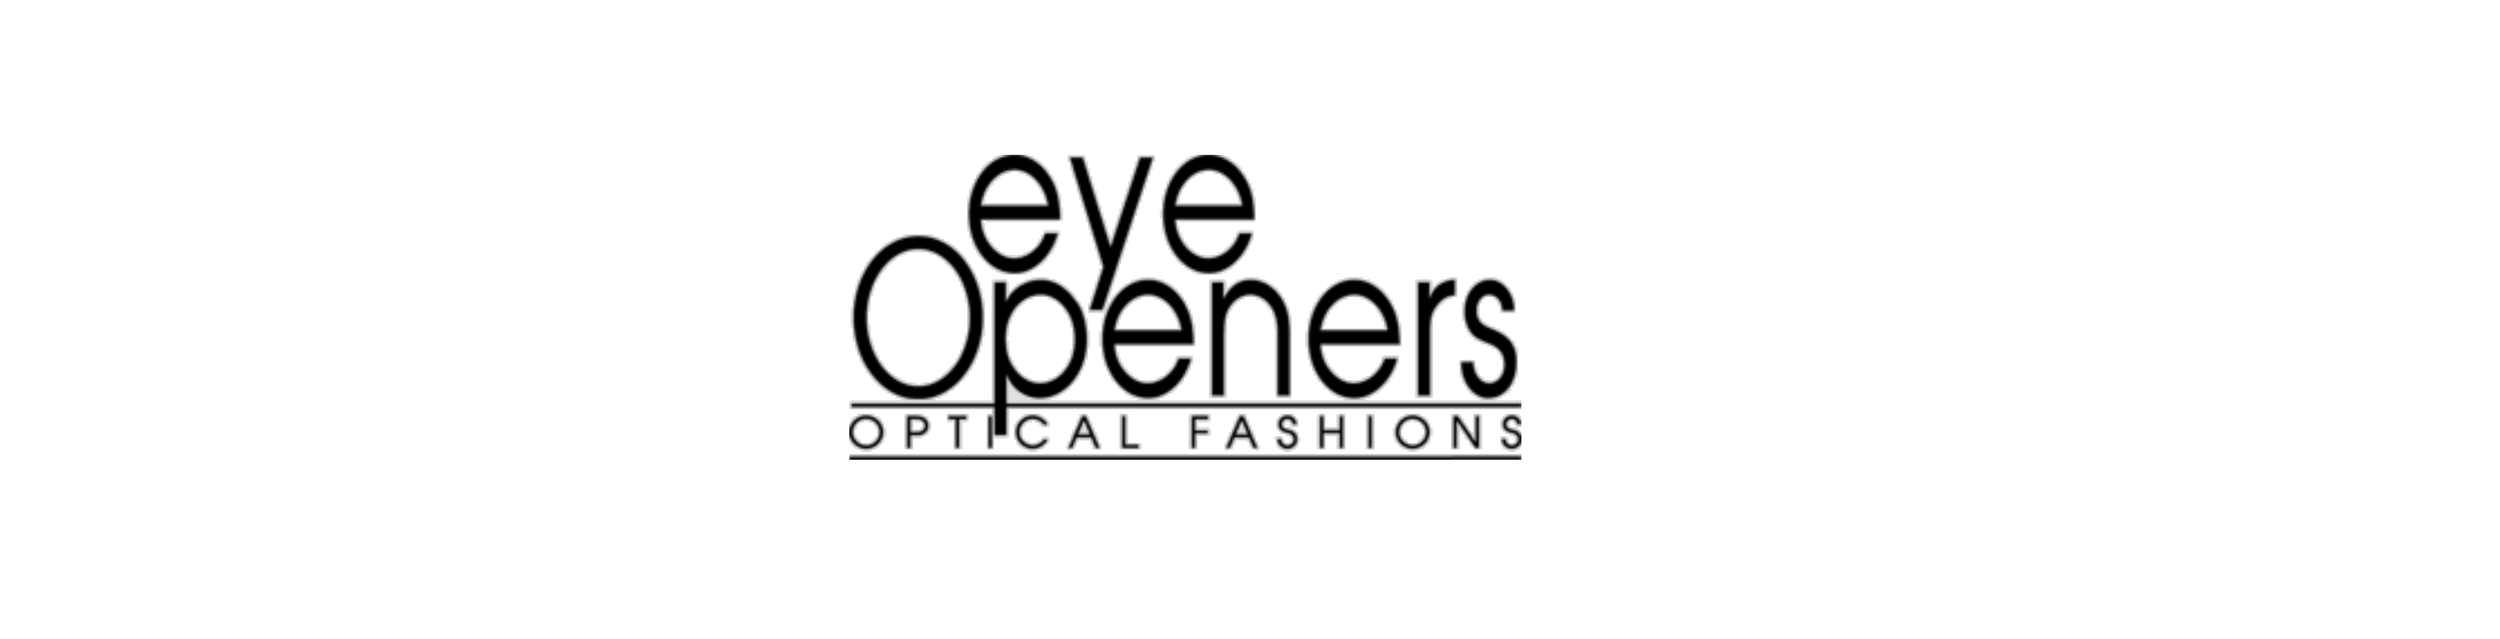 Eye Openers Optical Fashions - Rochester New York